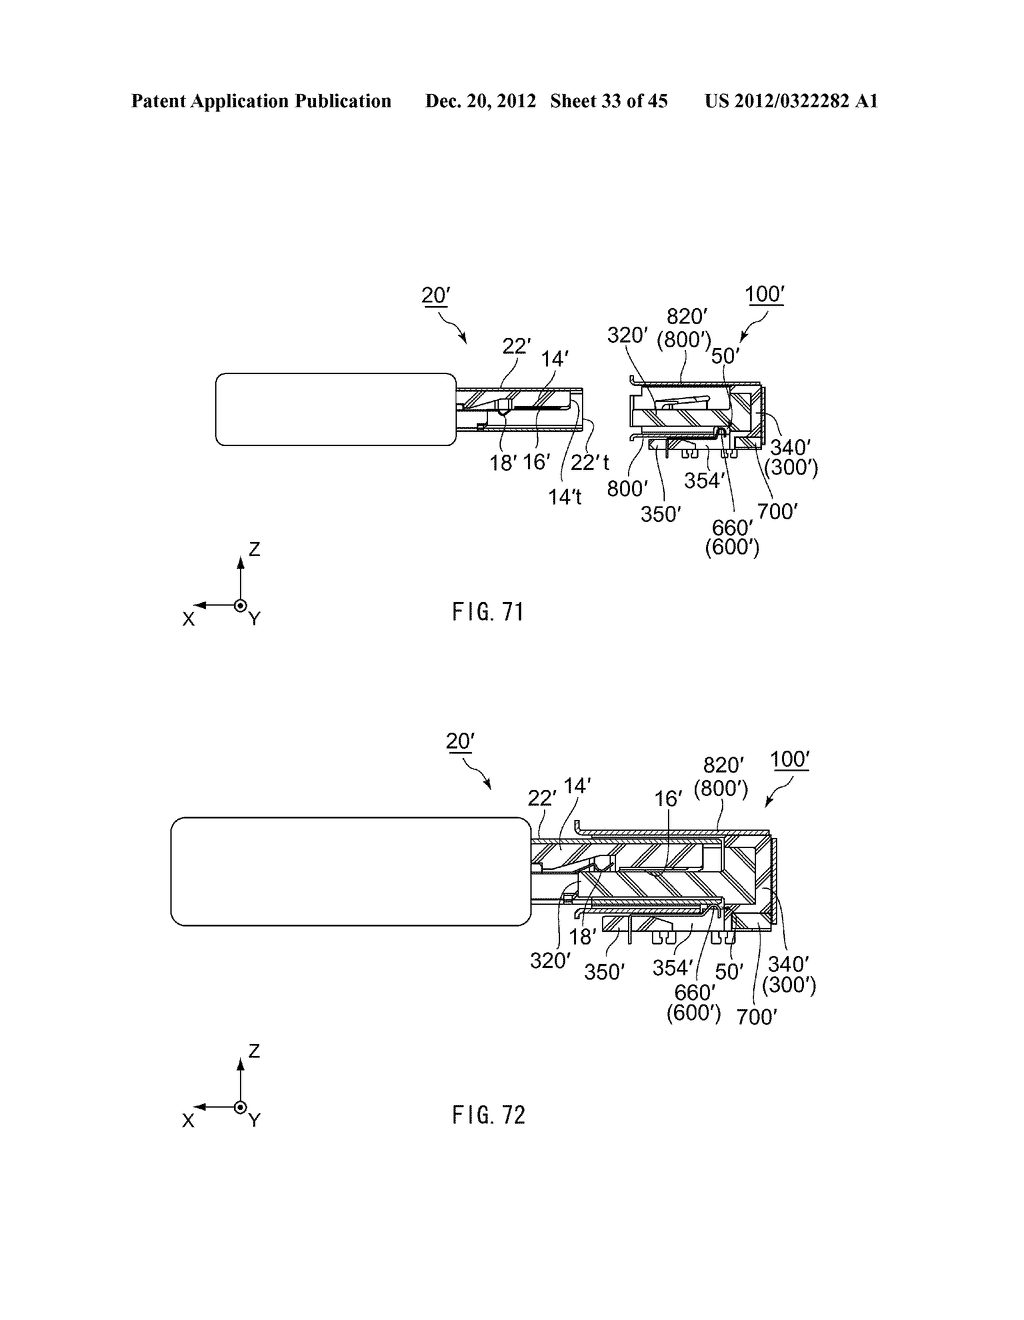 Special Usb Plug Having Different Structure From Standard Schematic And Receptacle Matable With The Diagram Image 34